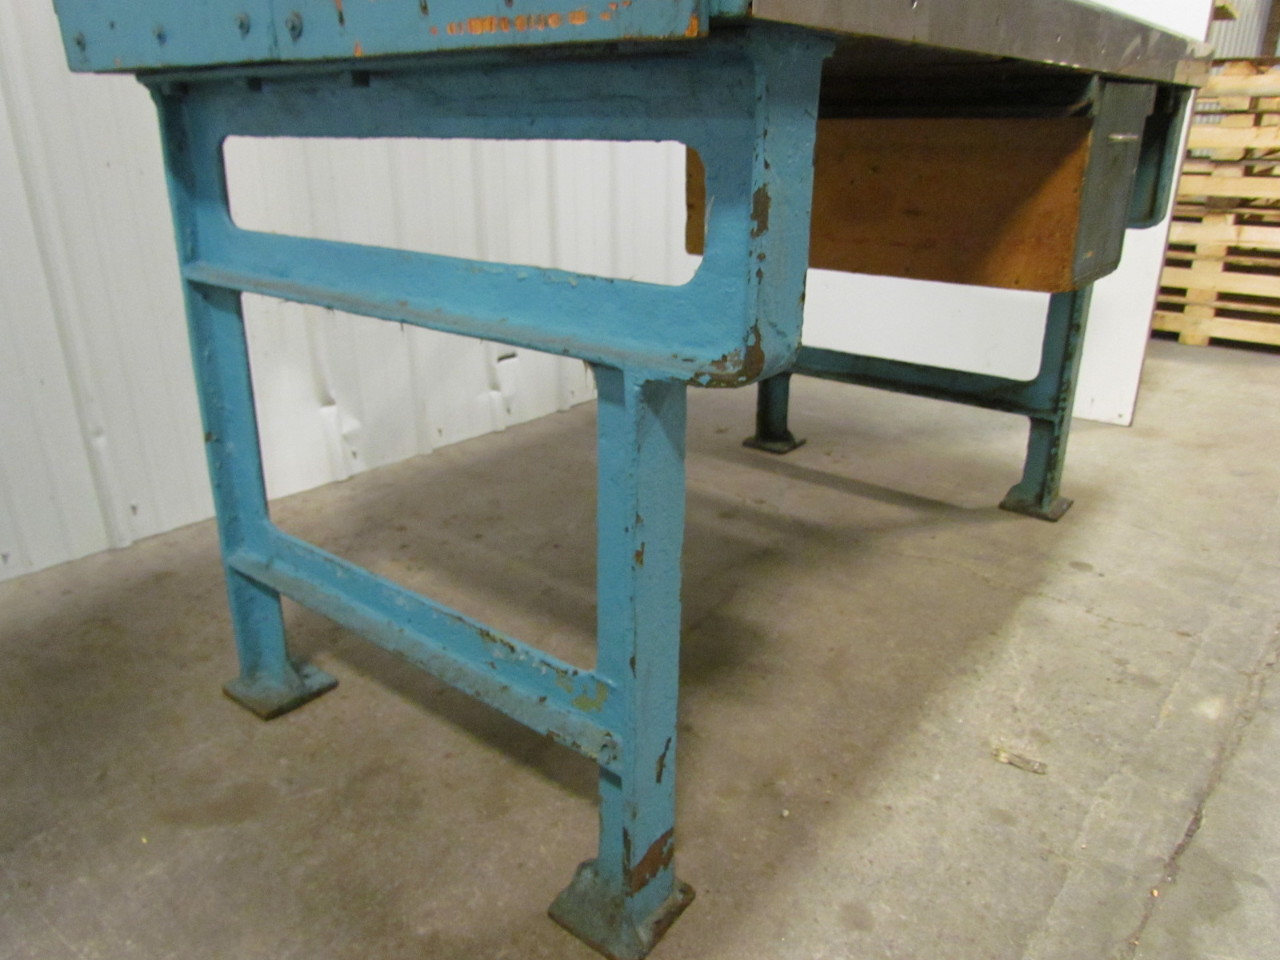 Vintage Industrial Heavy Duty Workbench Desk Butcher Block Table Cast Iron Legs Ebay